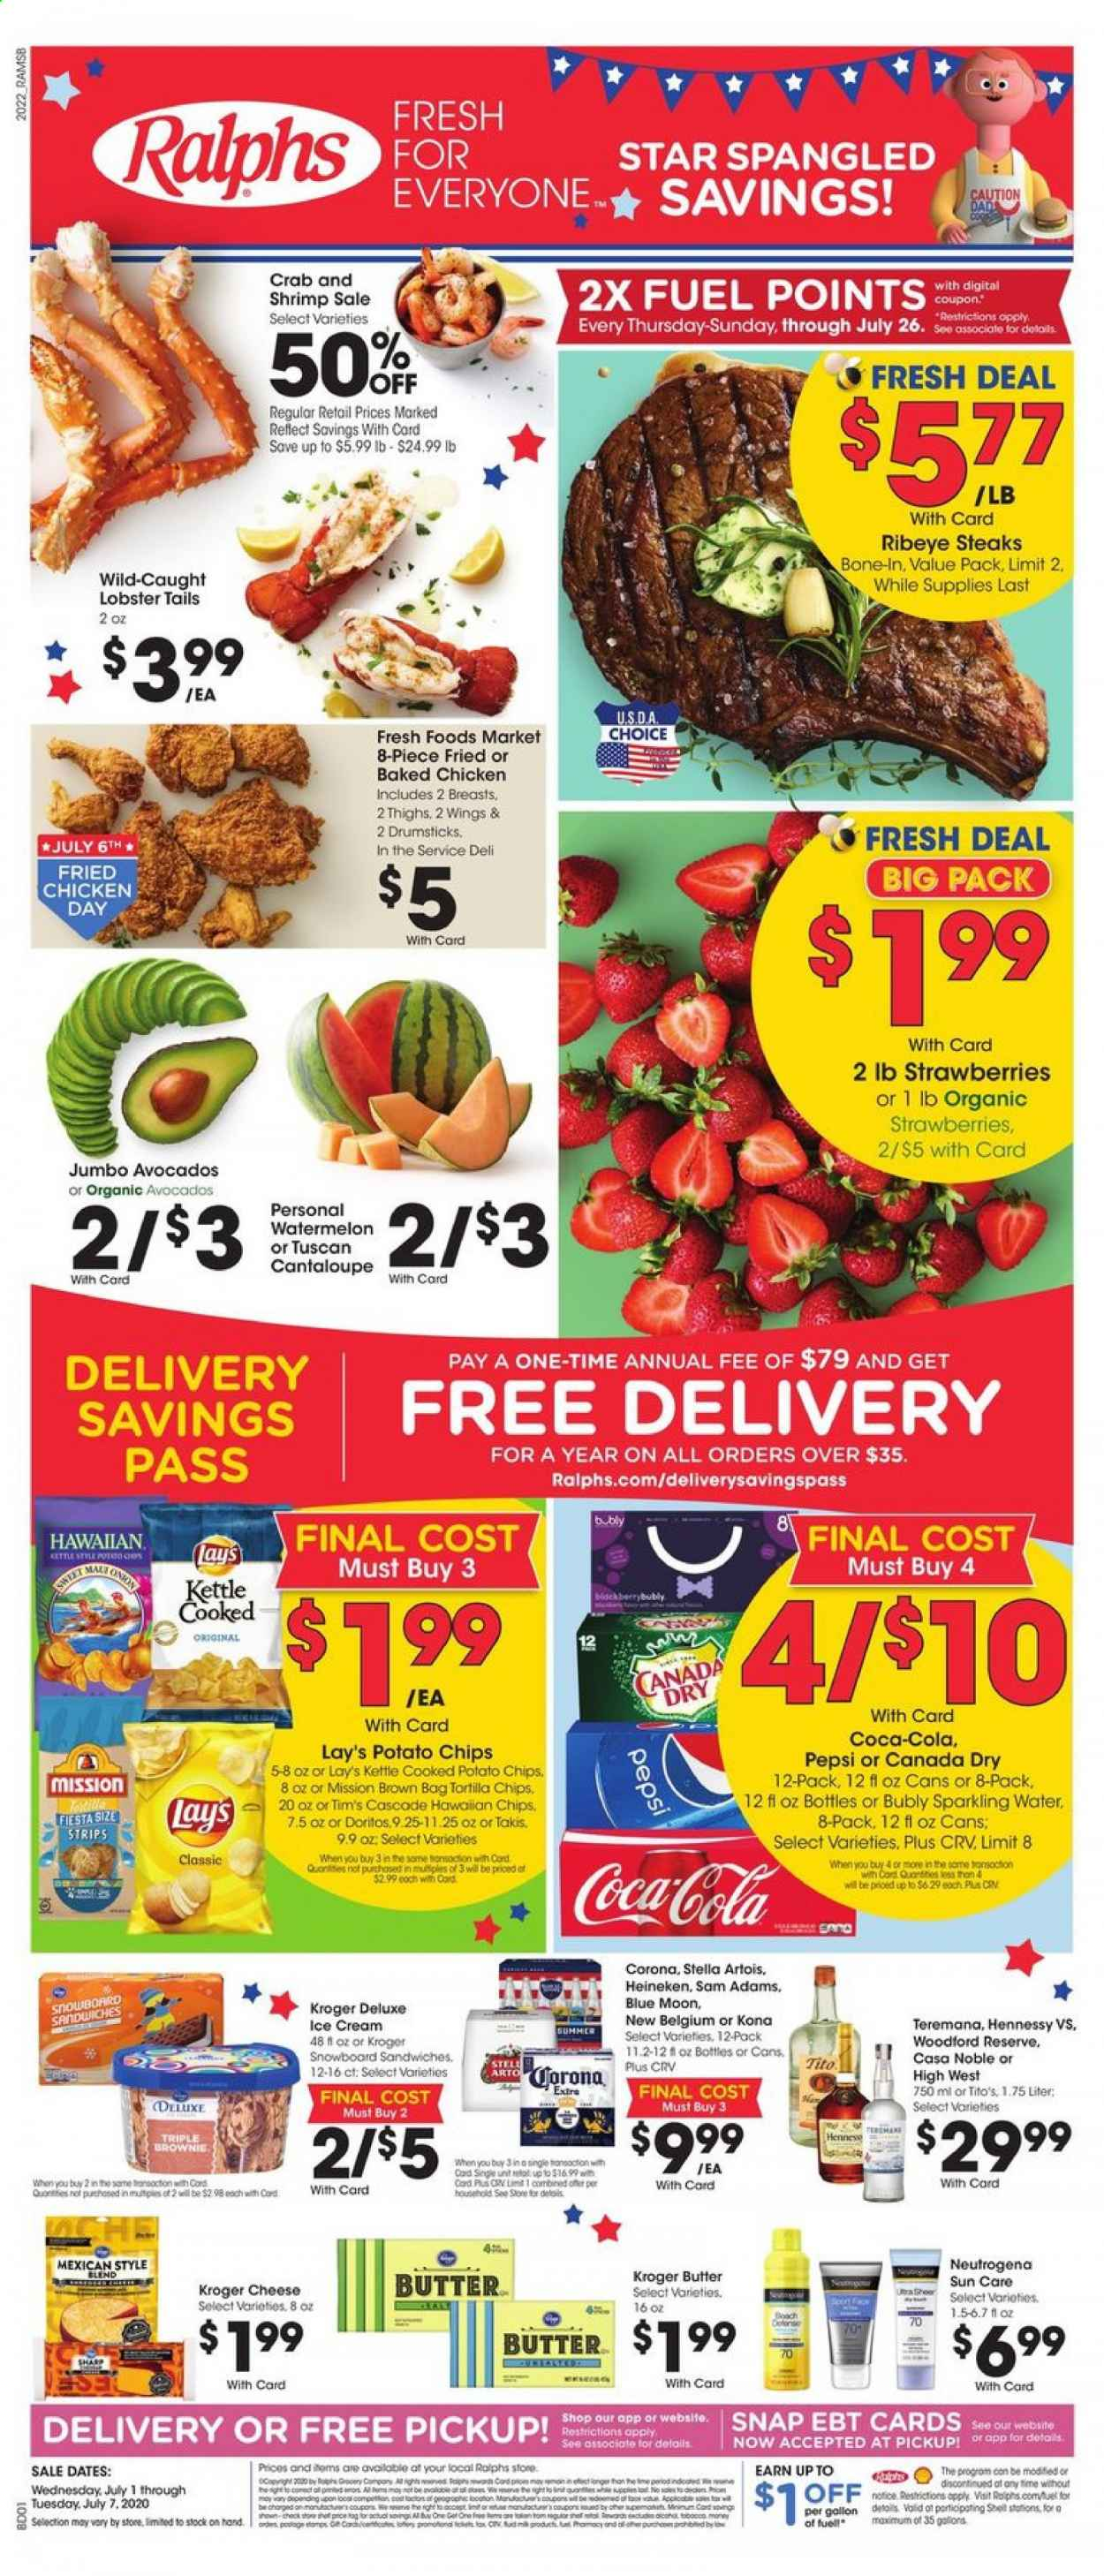 Ralphs Flyer - 07.01.2020 - 07.07.2020 - Sales products - avocado, bag, butter, canada dry, cantaloupe, cascade, coca-cola, dates, doritos, fuel, lobster, lobster tails, neutrogena, shell, shrimp, stella artois, strawberries, tortilla chips, watermelon, ice cream, potato chips, chicken, pepsi, onion, organic, chips, cheese, sparkling water, lay's, cot, crab, wings, corona, blue moon, heineken, brownie, hennessy, fried chicken. Page 1.